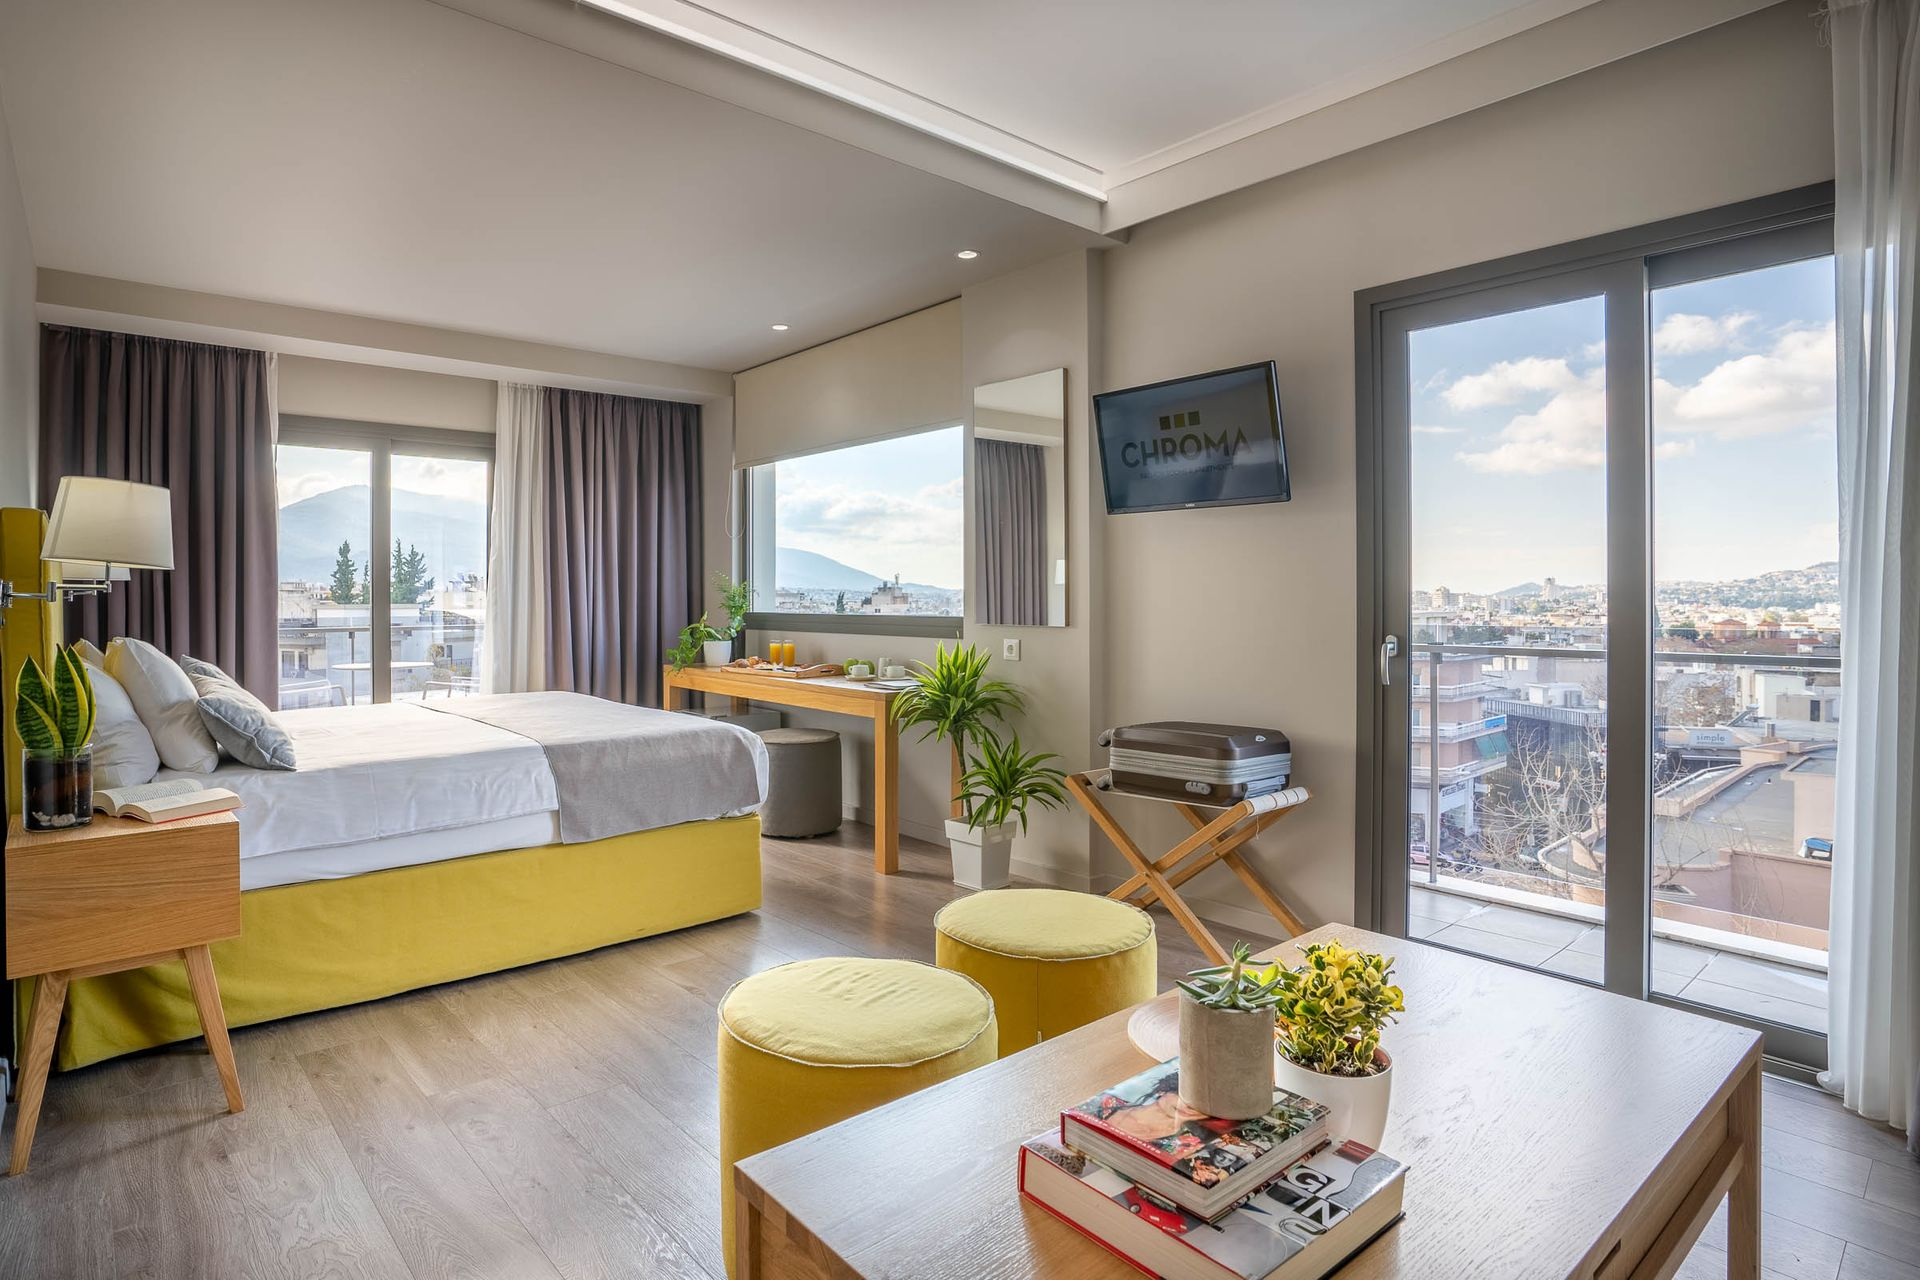 Chroma Fashion Rooms & Apartments Athens - Αθήνα ✦ 2 Ημέρες (1 Διανυκτέρευση) ✦ 2 άτομα ✦ Χωρίς Πρωινό ✦ έως 09/05/2021 ✦ Free Wi - Fi